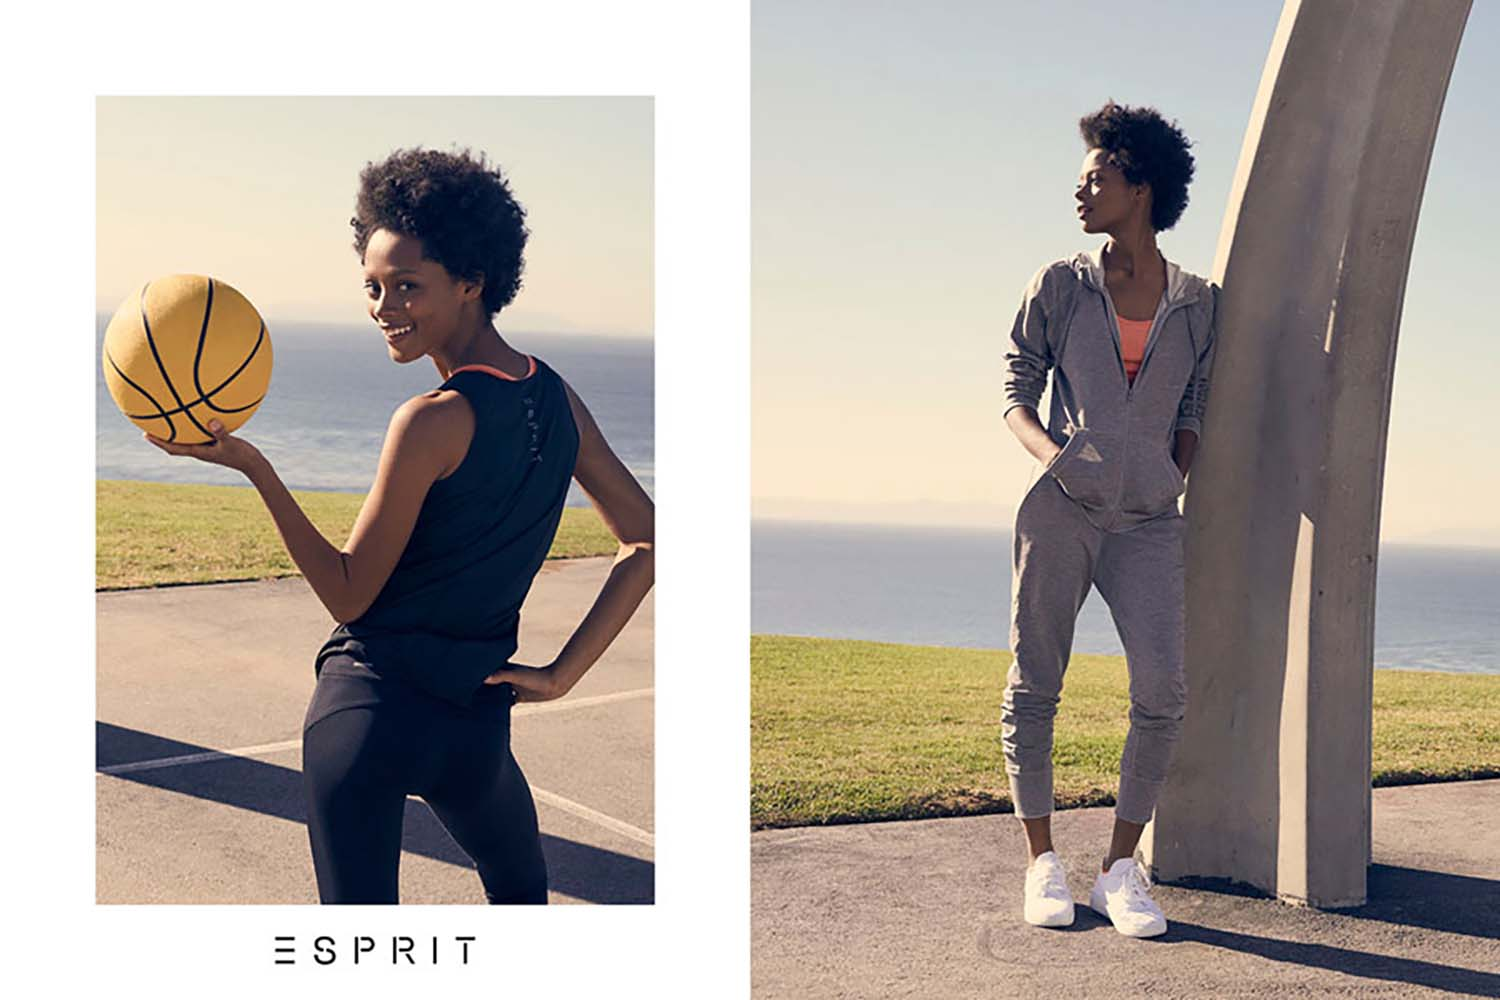 Esprit by Stina Daag